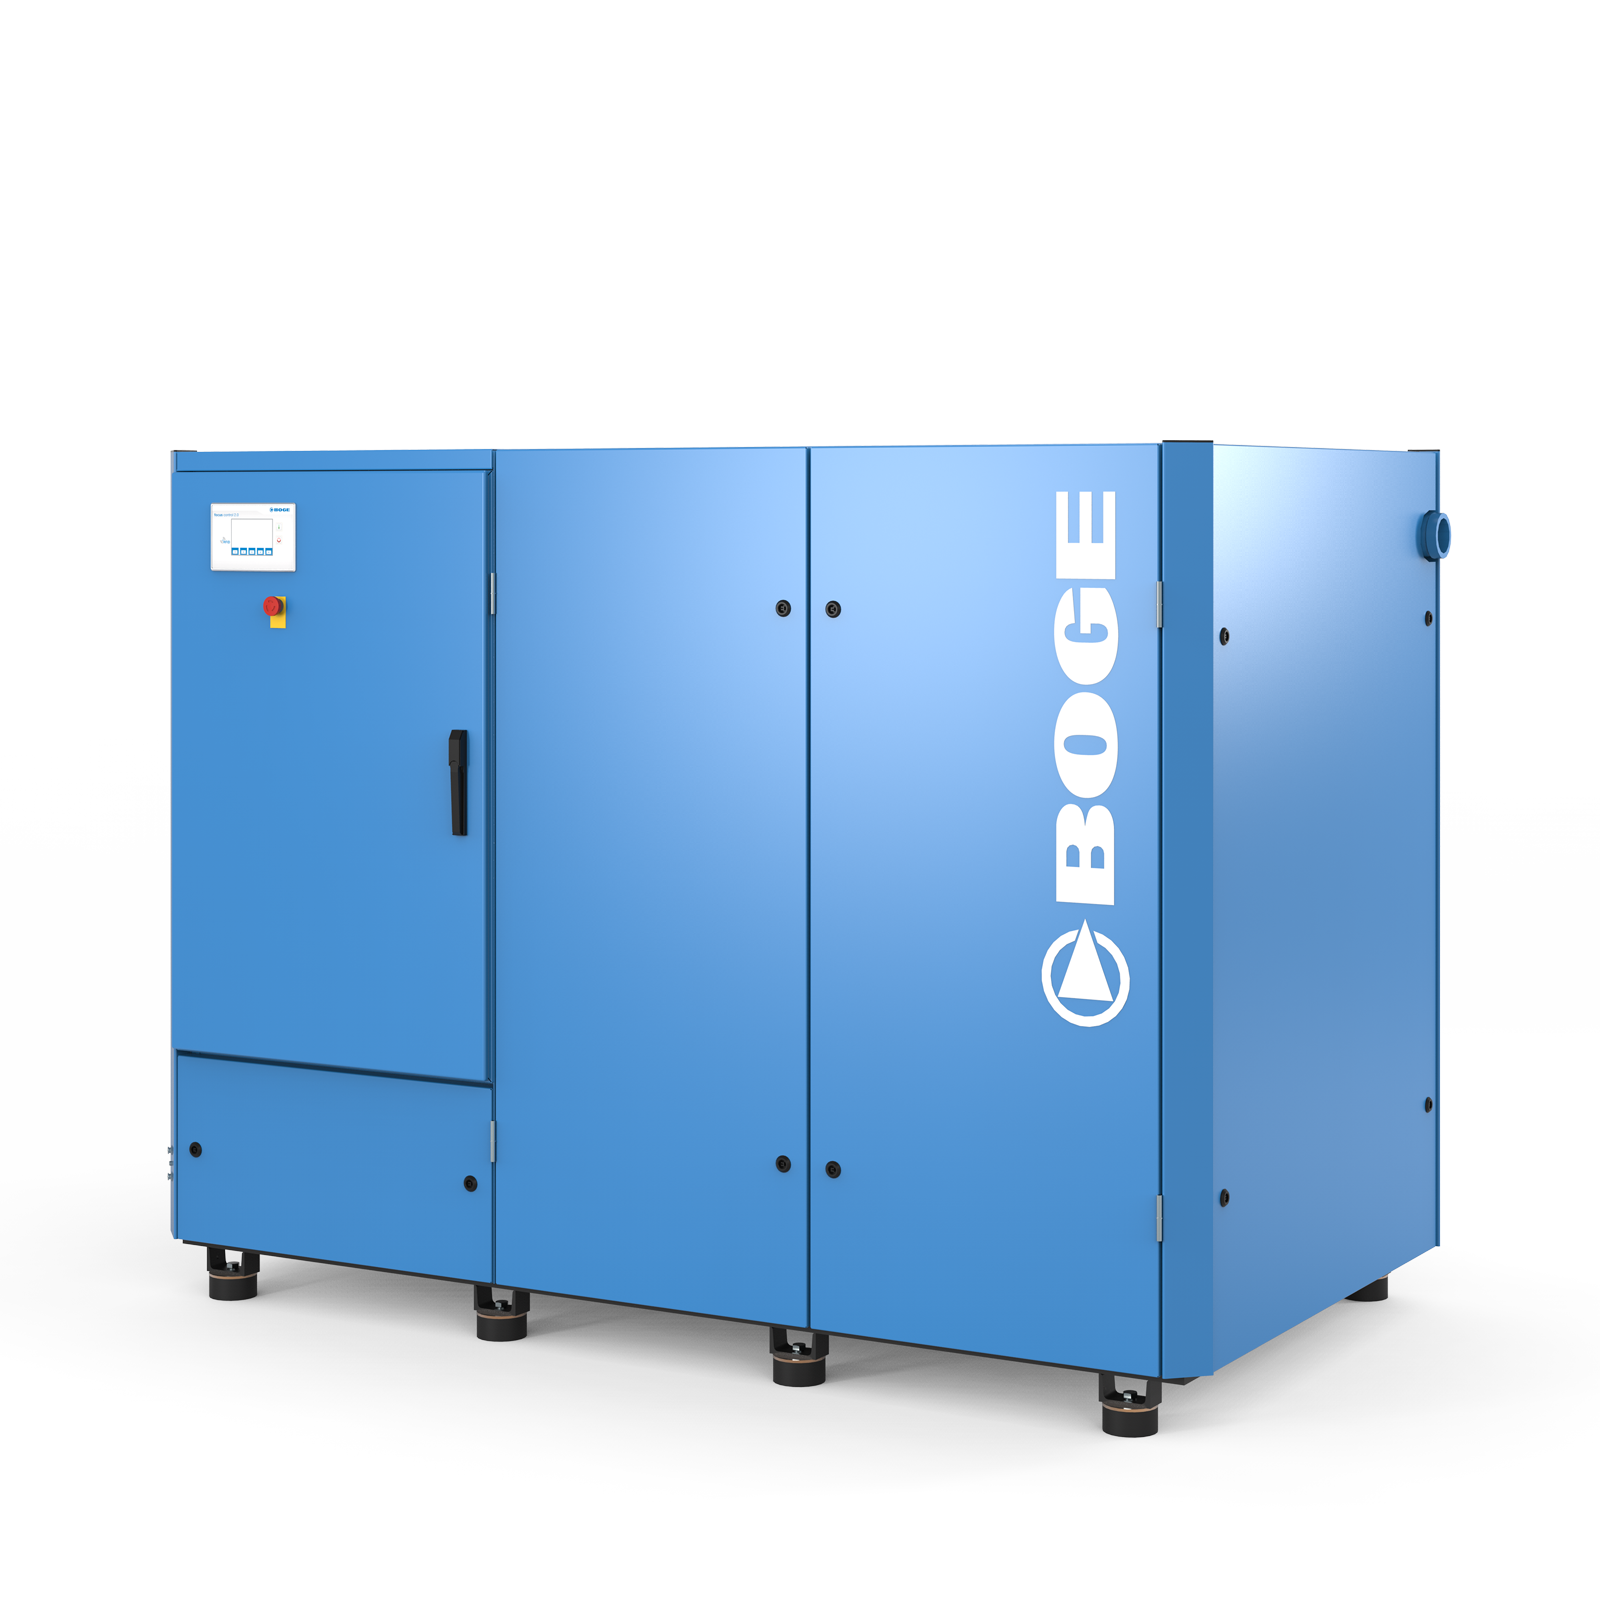 BOGE S 101 Screw Compressor